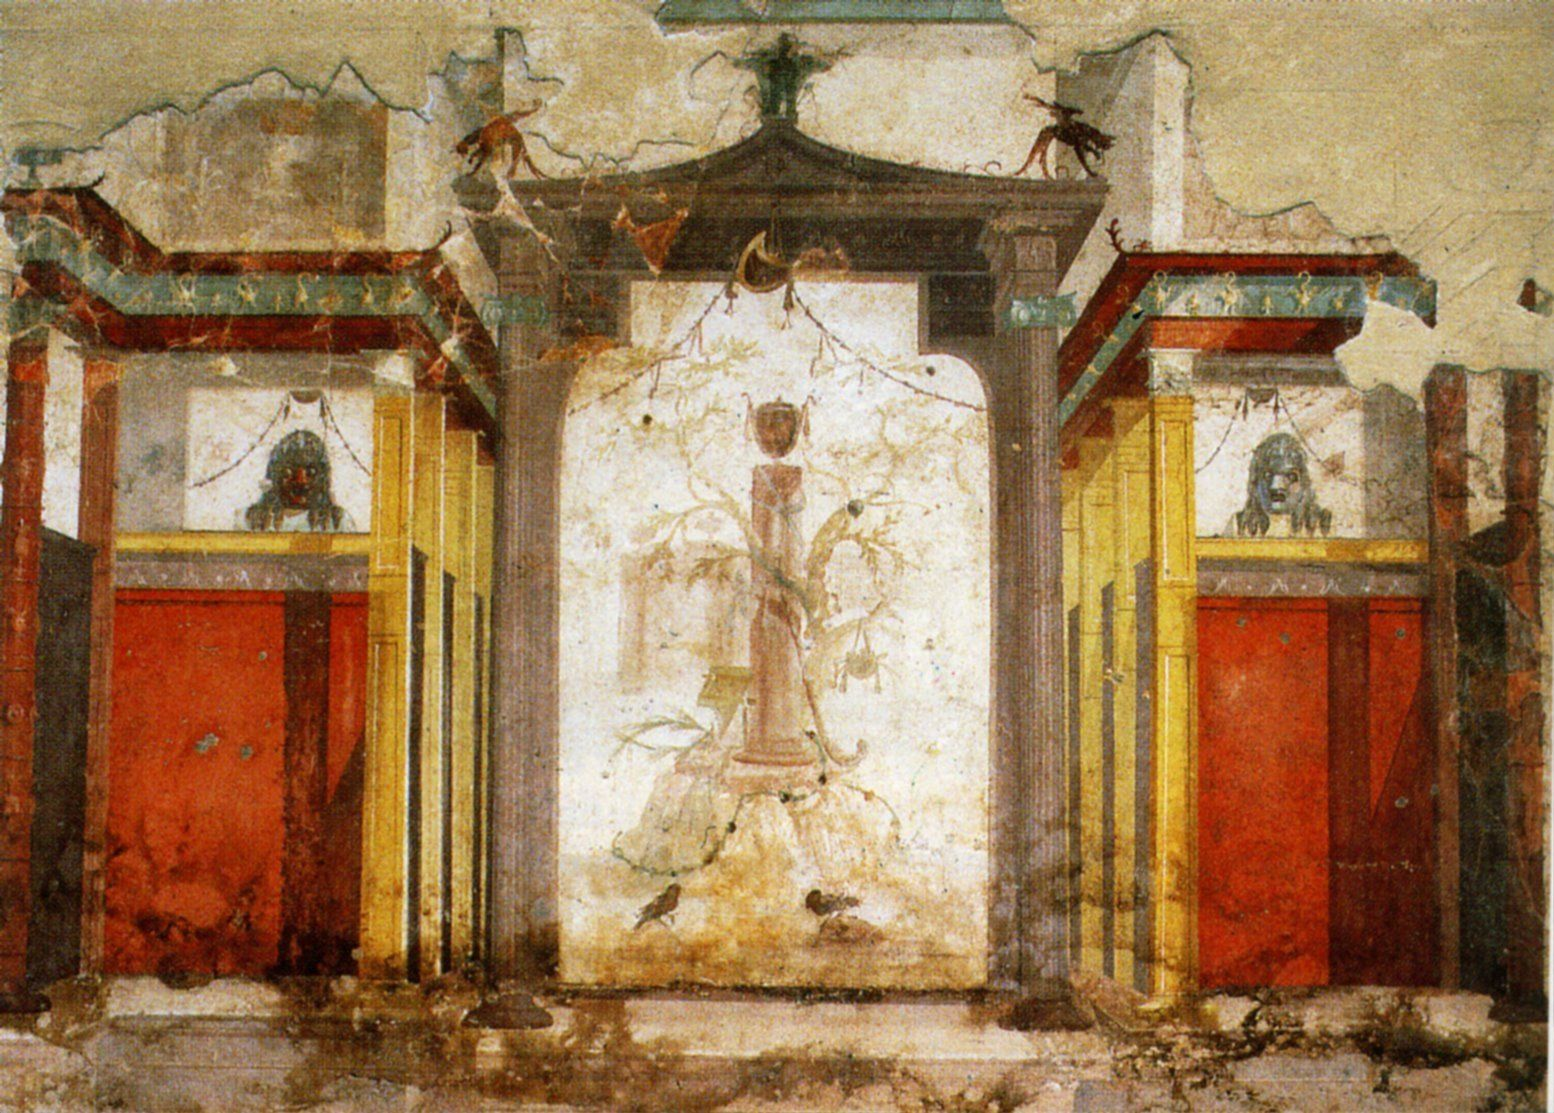 Peinture Murale Du Second Style Maison D Auguste Rome Mural Of The Second Style House